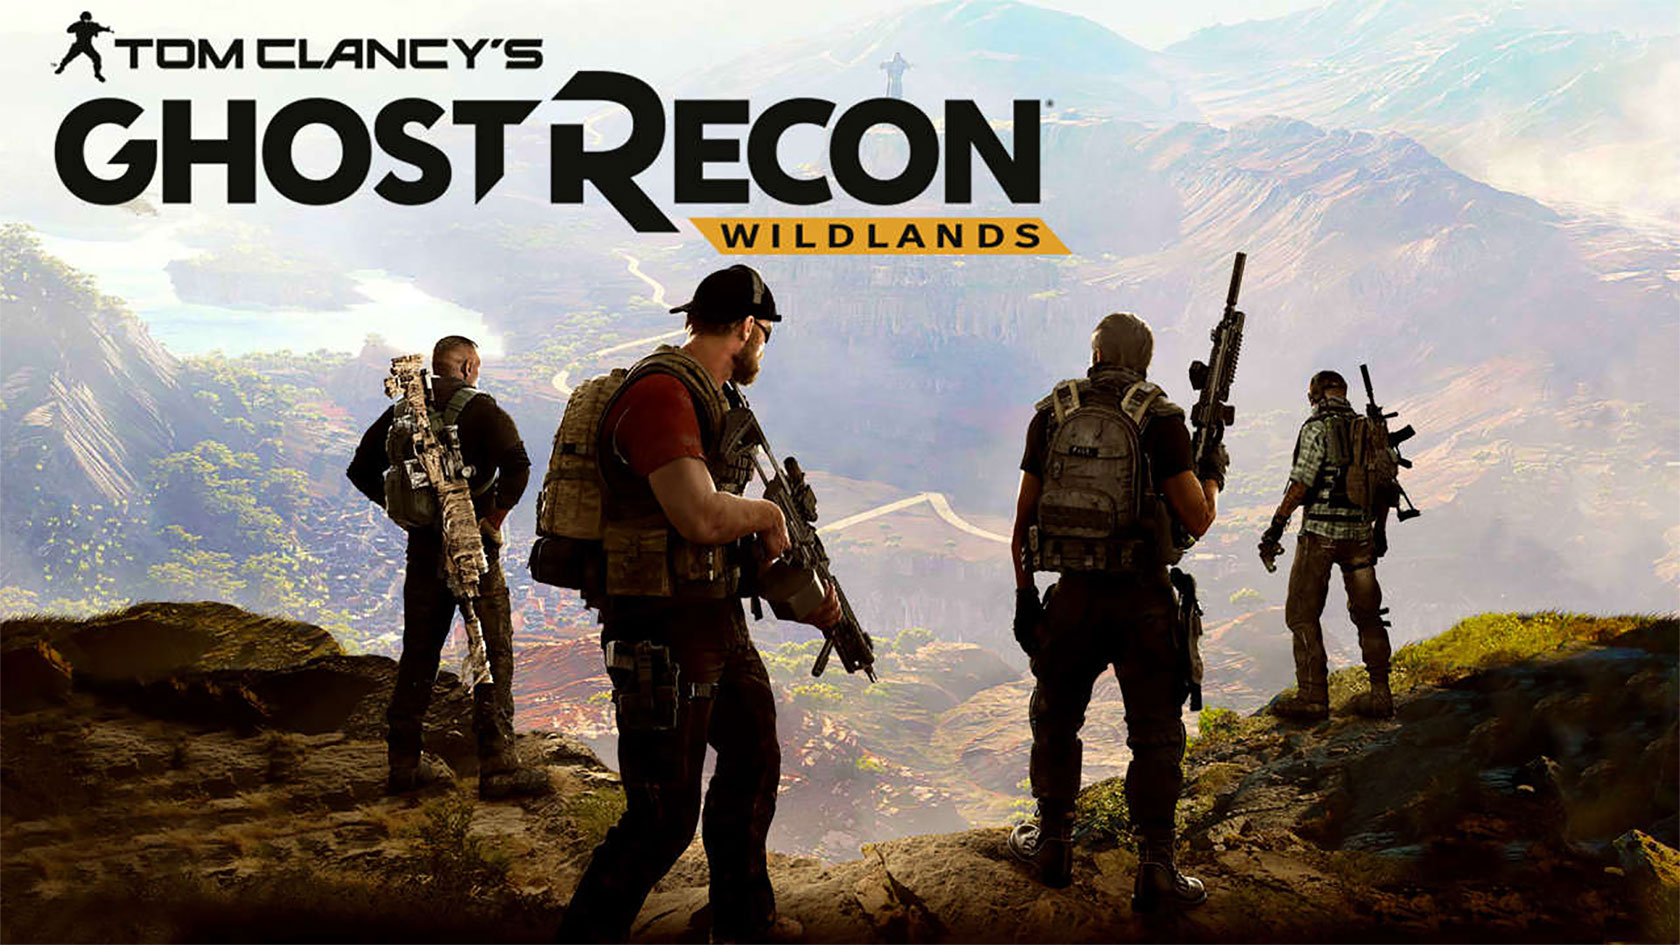 Tom Clancy's Ghost Recon Wildlands Ghost Recon Wildlands